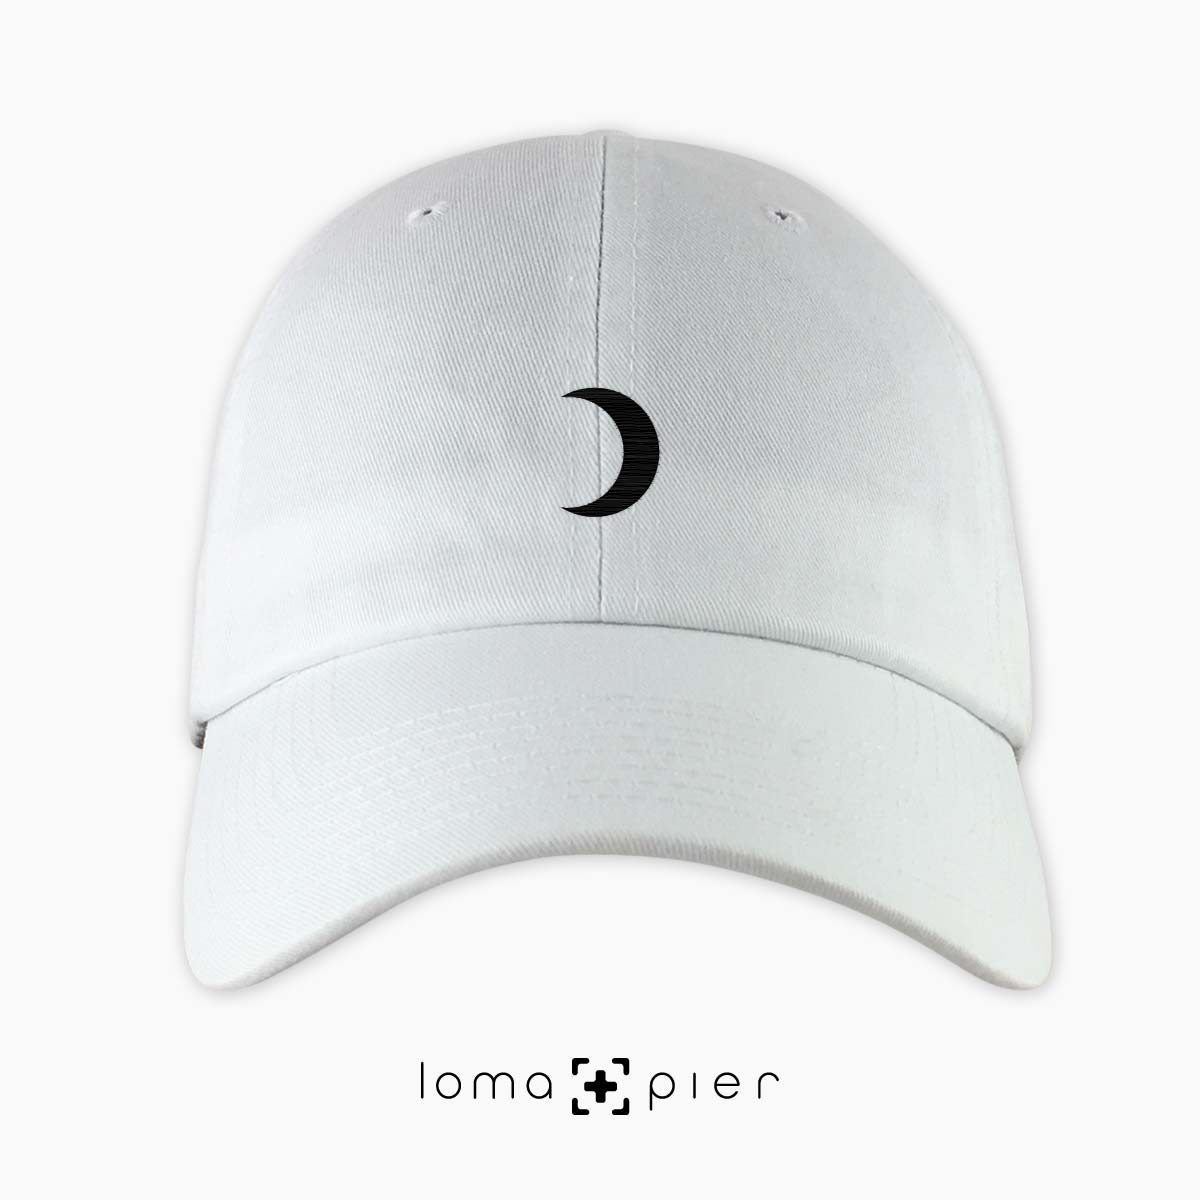 MOON icon embroidered on a white dad hat by loma+pier hat store made in the USA